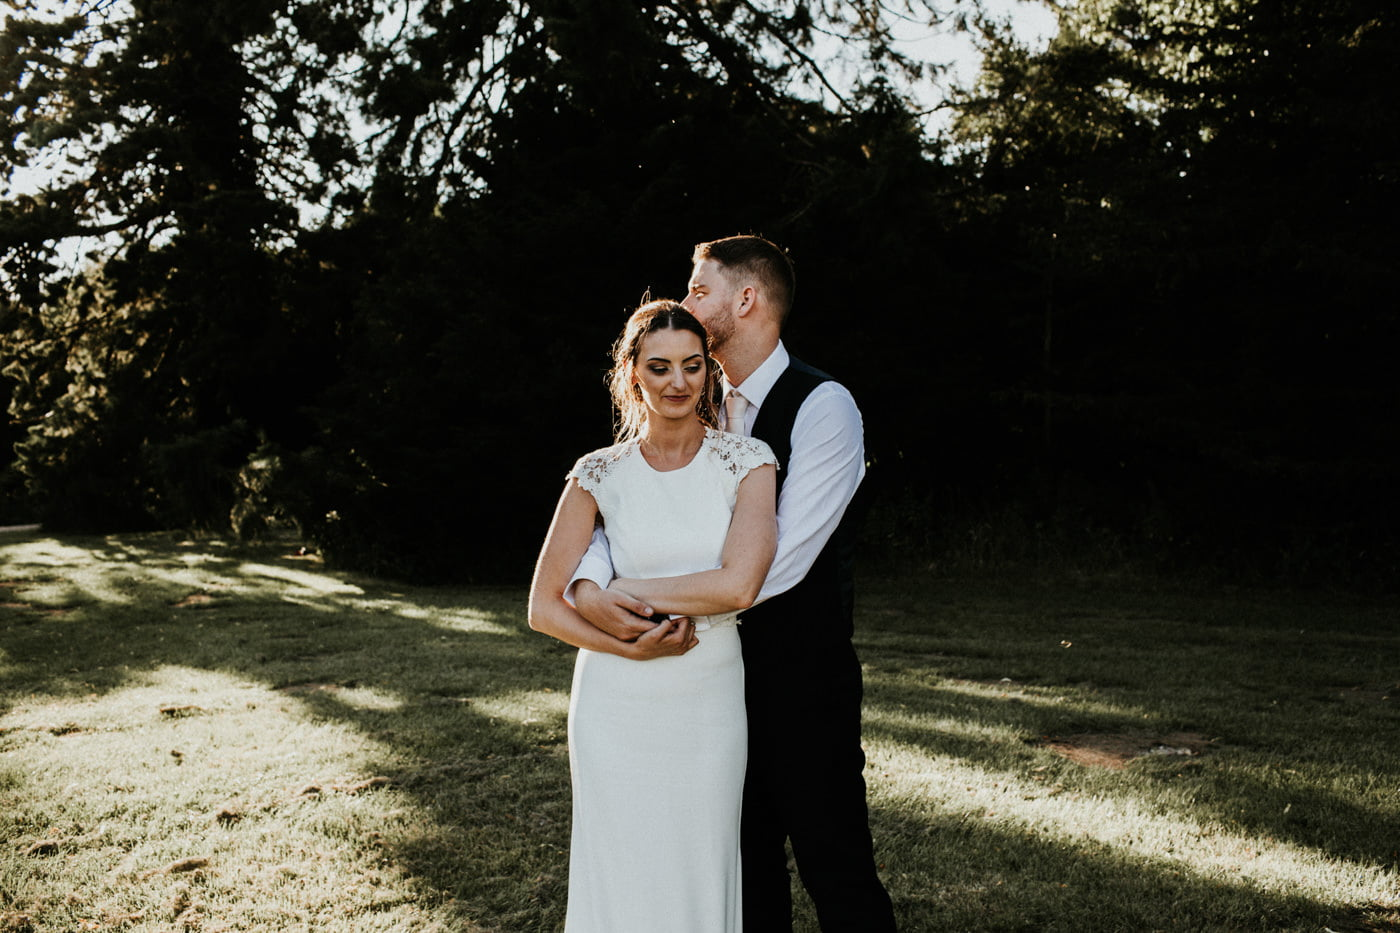 Katy and Adam, Elmhay Park, Somerset 56